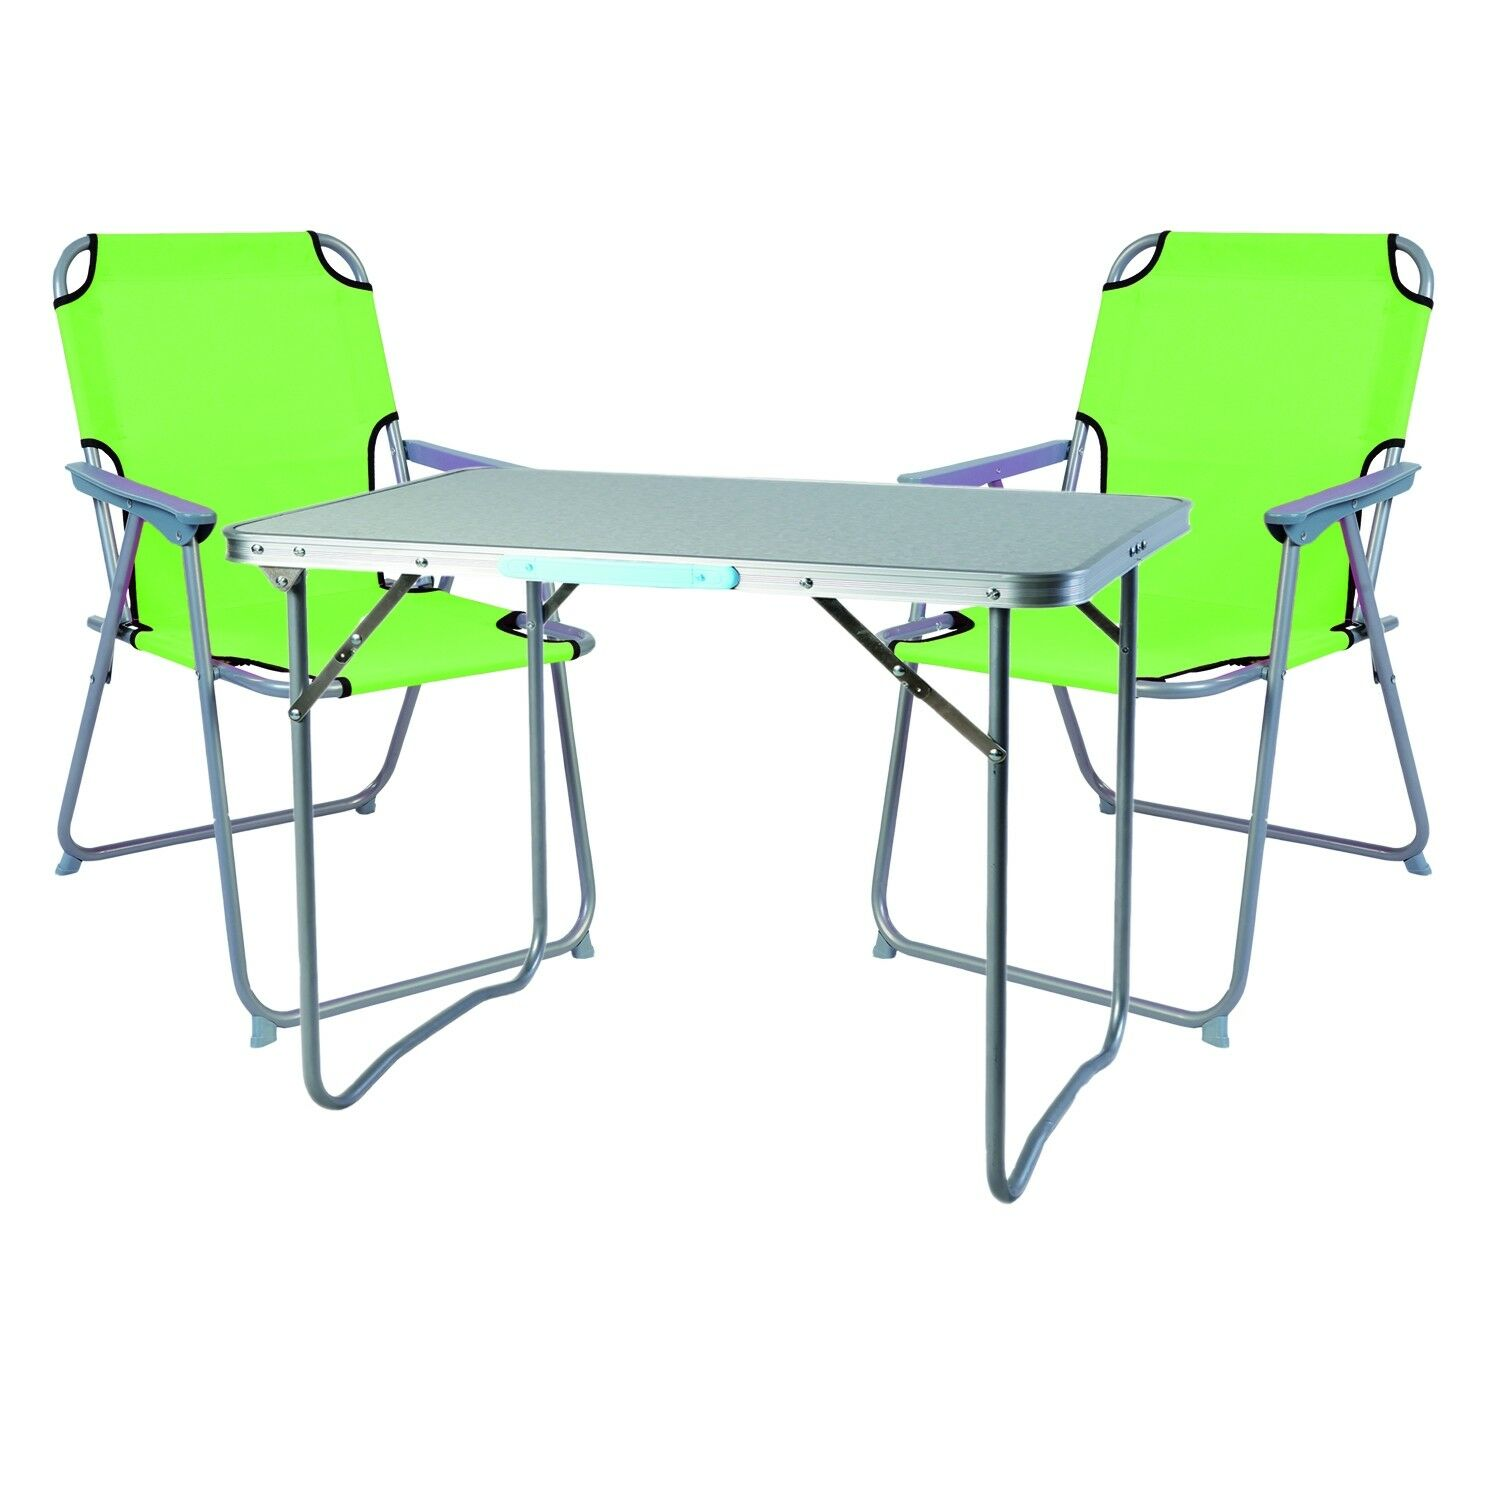 3 Piece Camping Furniture Set Aluminium With Carry Handle Camping Lime-Grün l70xb50xh59cm